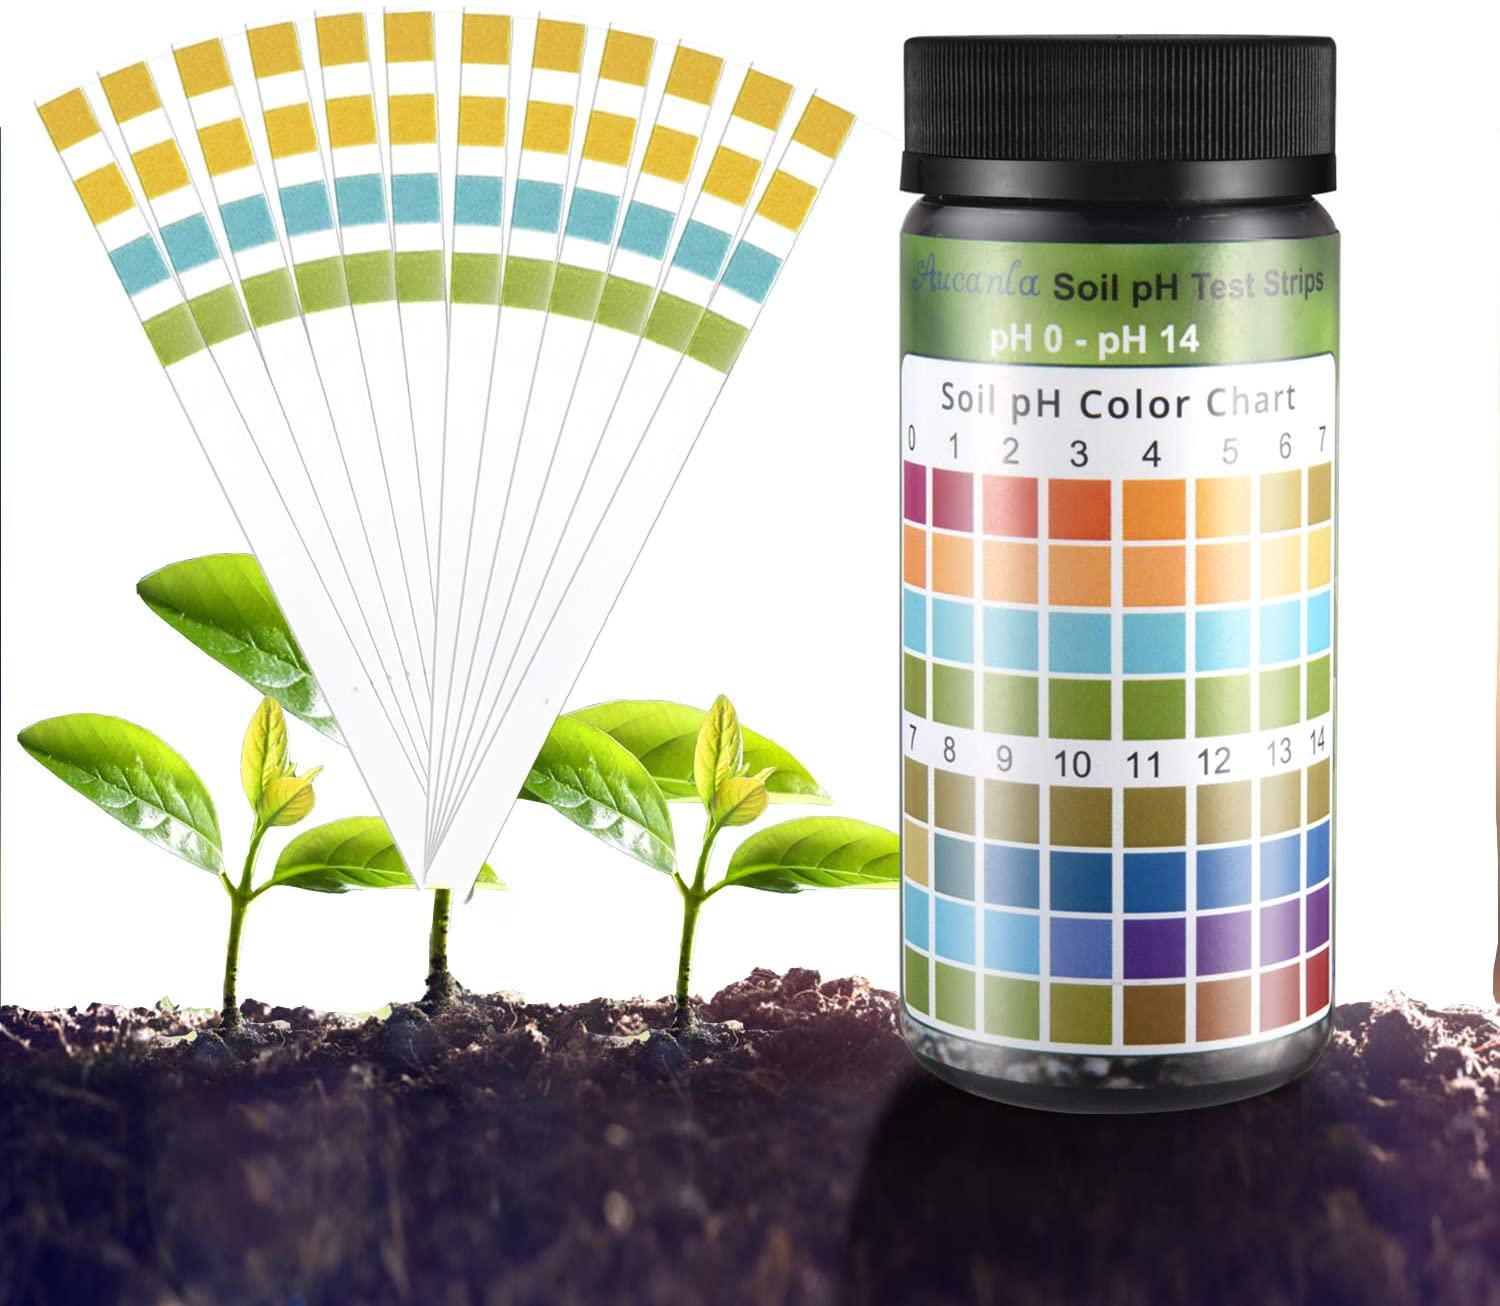 Aucanla Soil pH Test Kit,Gardening Tool Kits for Plant Care, Home,Garden, Lawn and Farm with 100 pcs Soil Test Strips